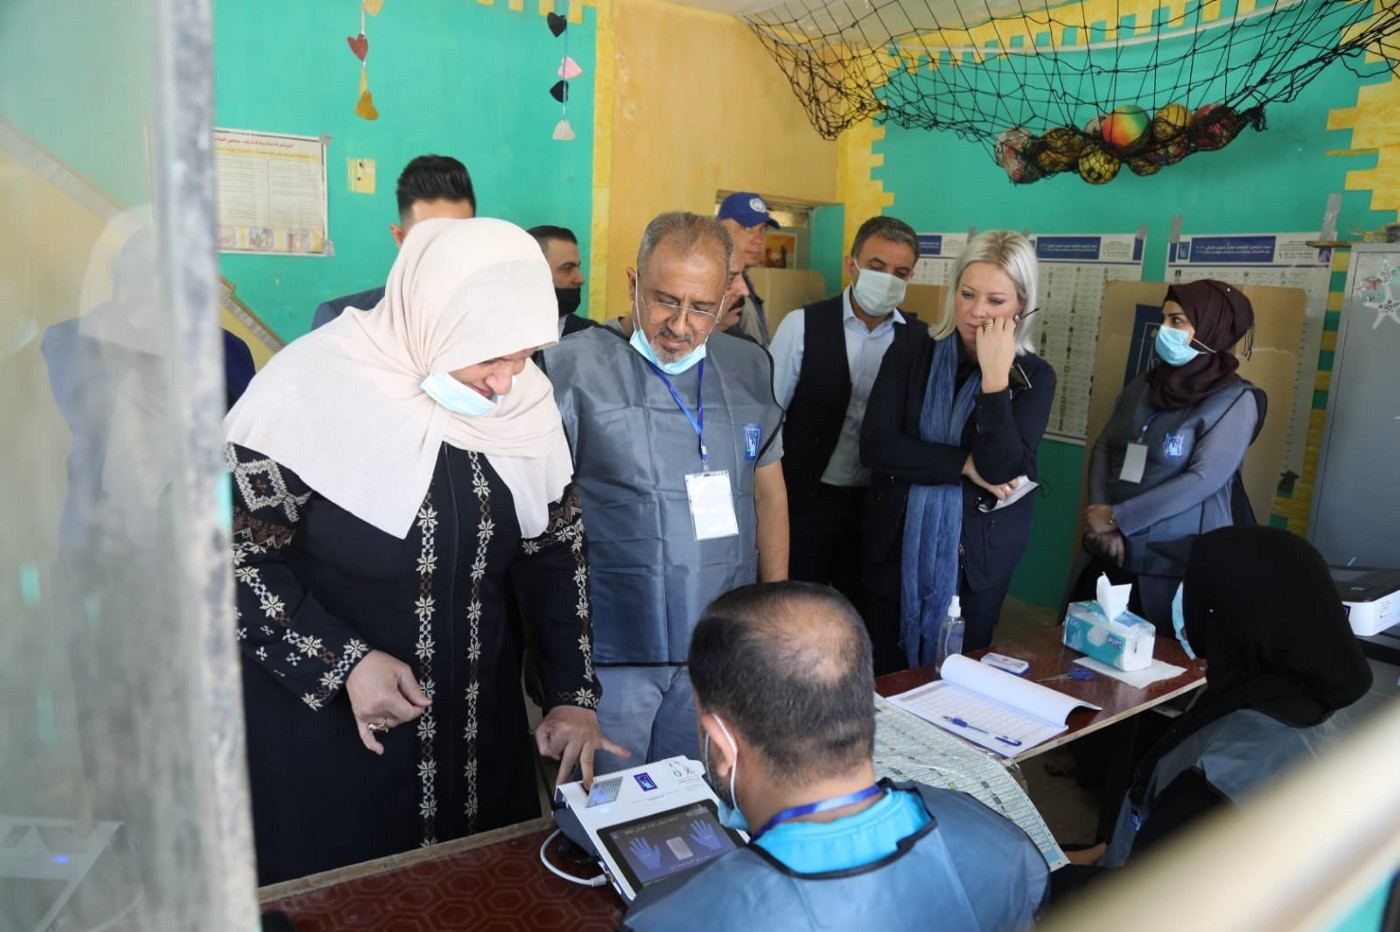 UN Special Representative for Iraq Jeanine Hennis-Plasschaert visiting a polling station in Adhamiyah in Baghdad on 10 October 2021.